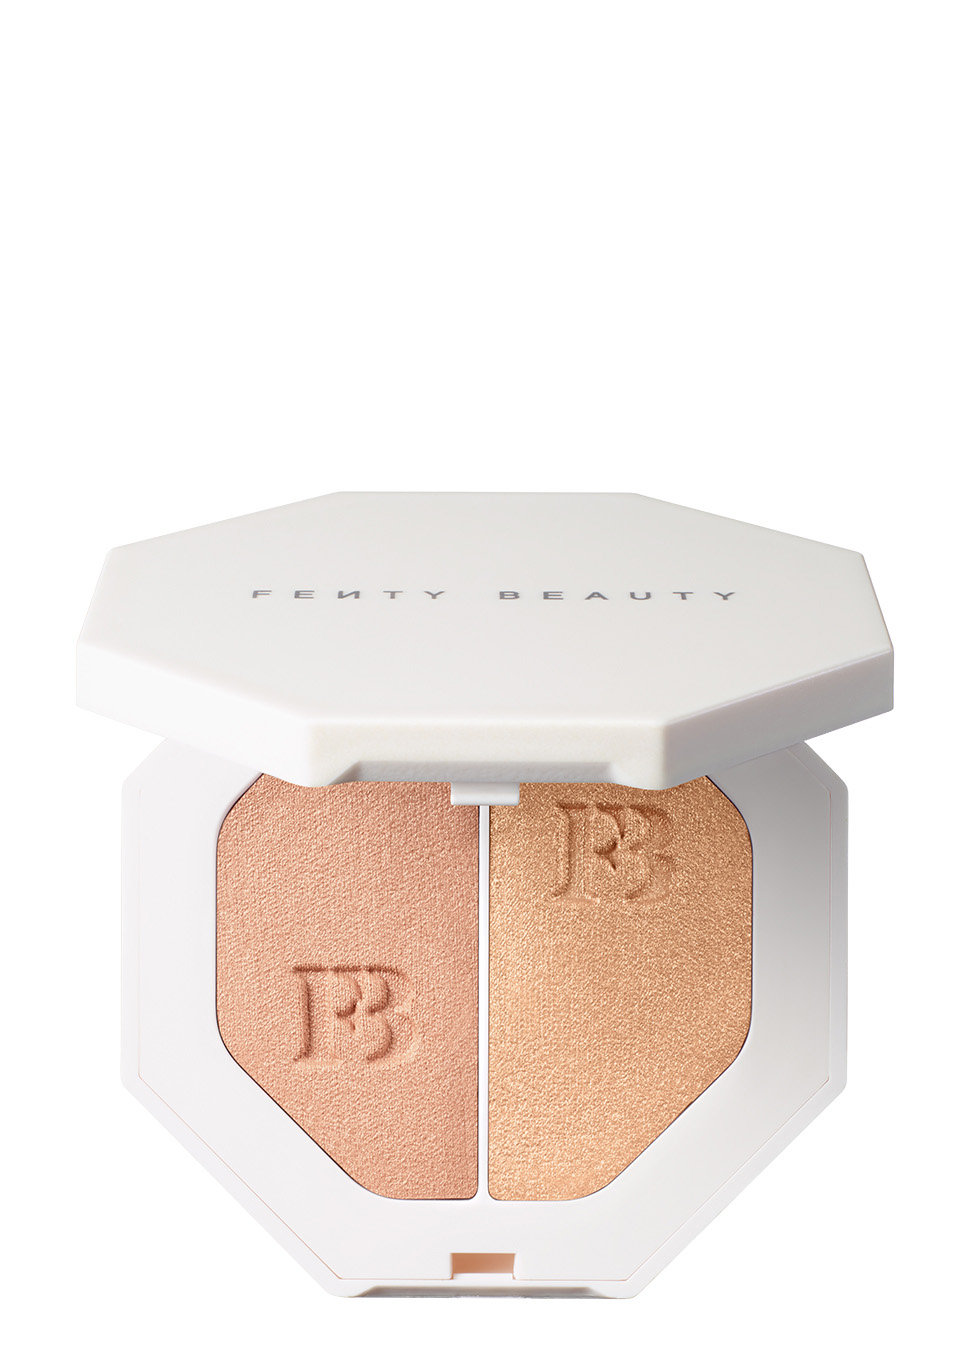 Killawatt Freestyle Highlighter Duo - FENTY BEAUTY